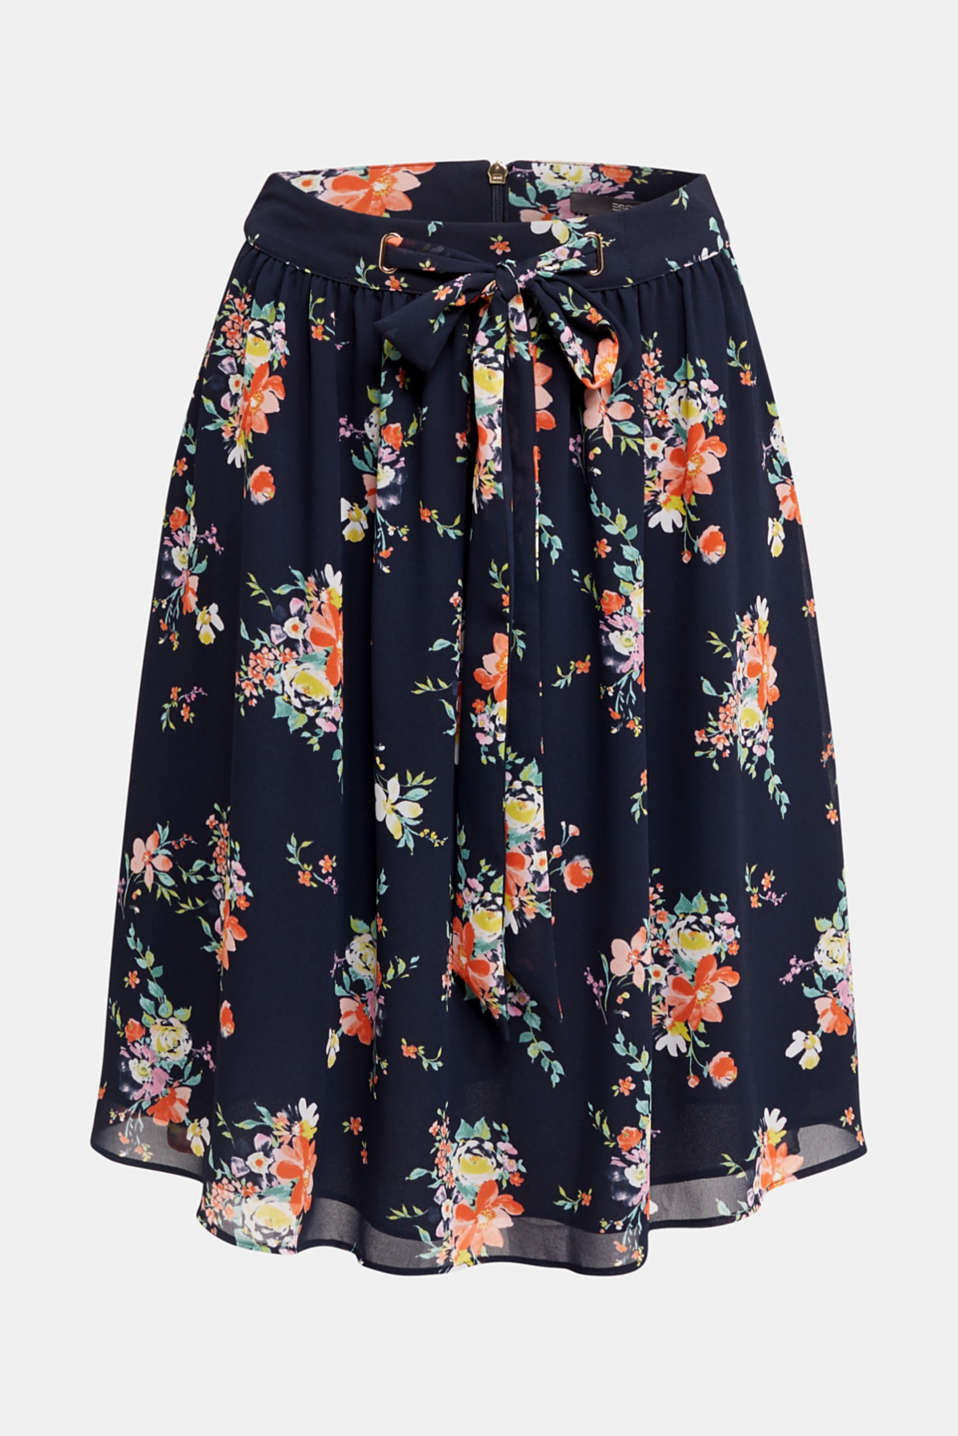 Skirt in floral crêpe chiffon, NAVY 4, detail image number 7